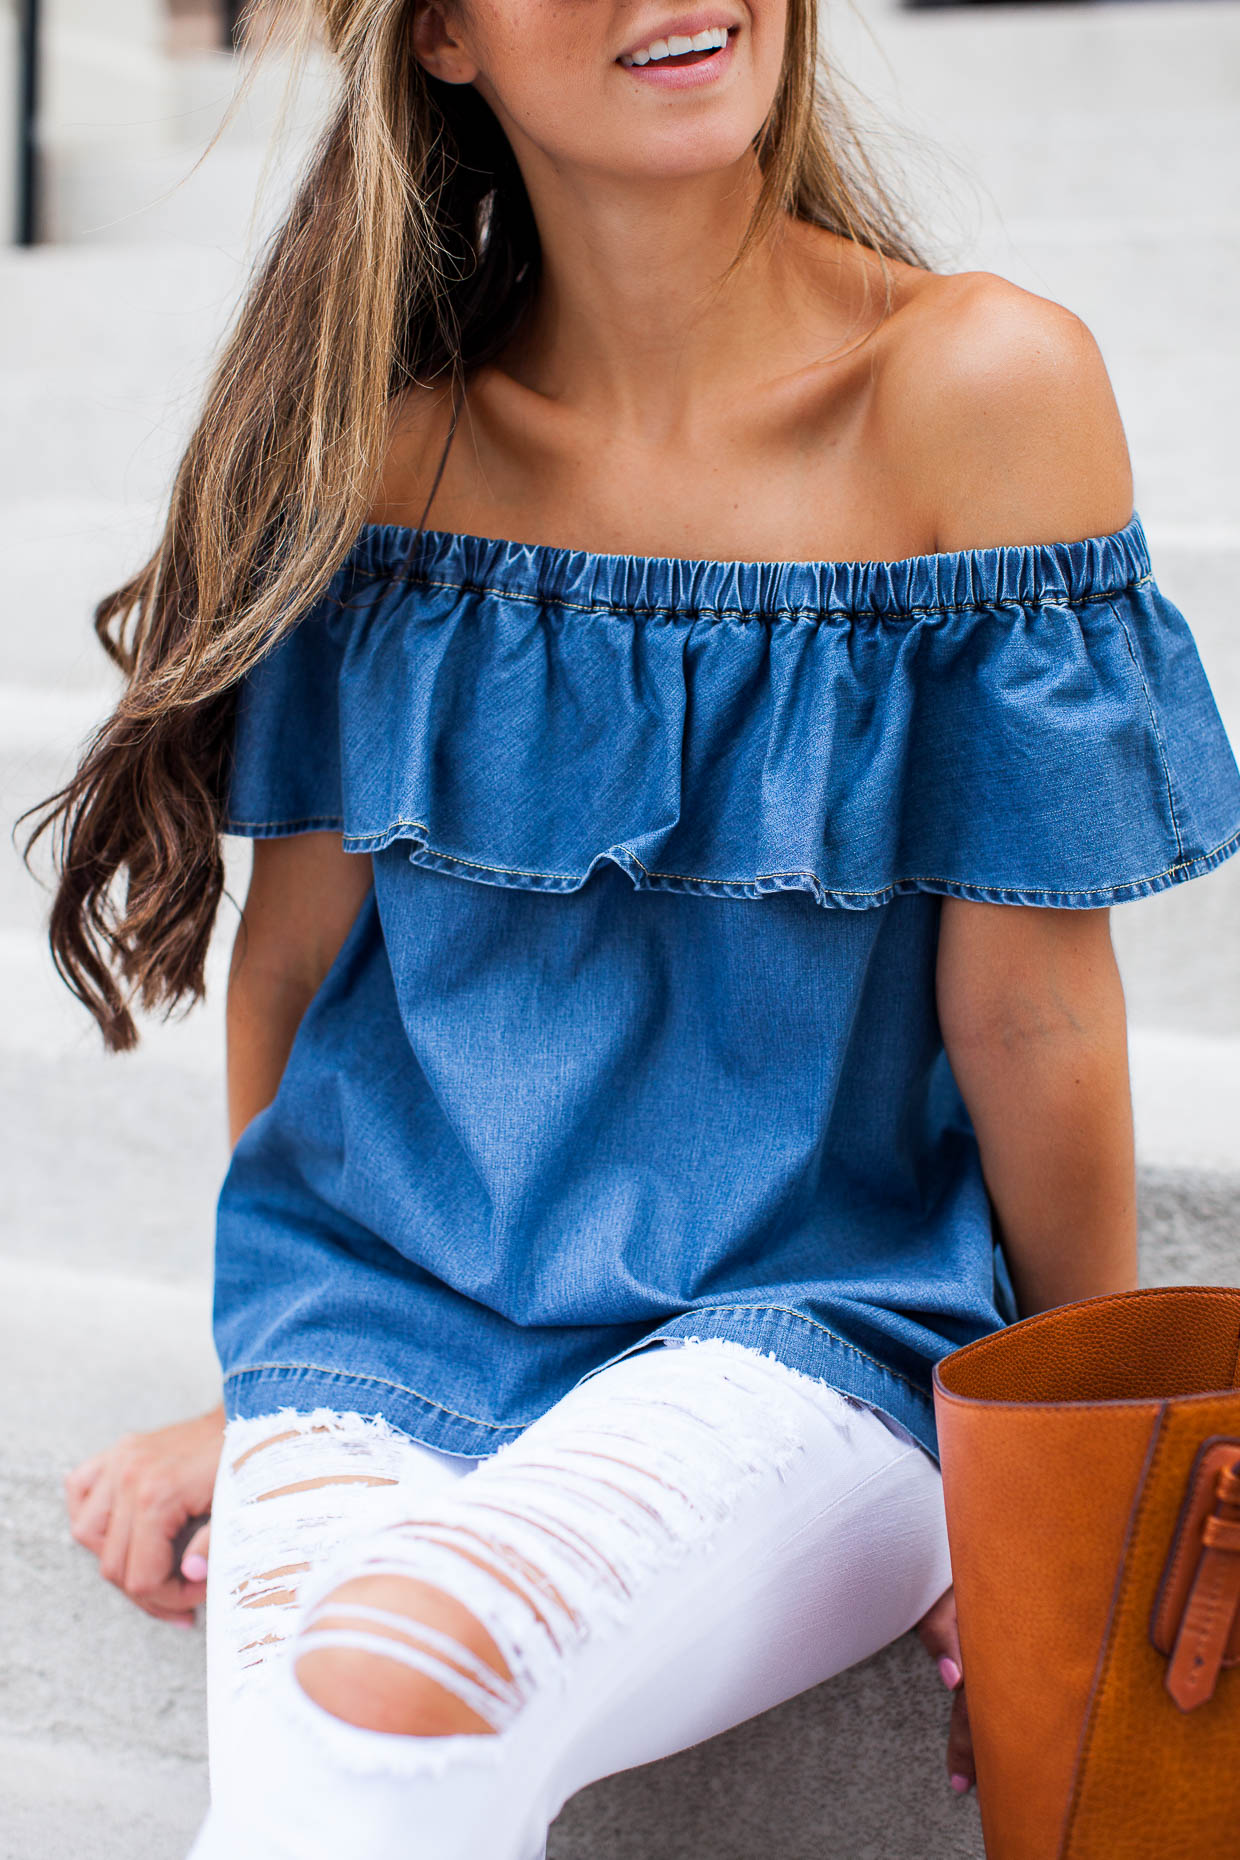 Fashion Blogger The Darling Detail is wearing a Chelsea28 Off the Shoulder Chambray Top and 'Le Color Rip' Skinny Jeans, and sporting a Sole Society Faux Leather Trapeze Tote.